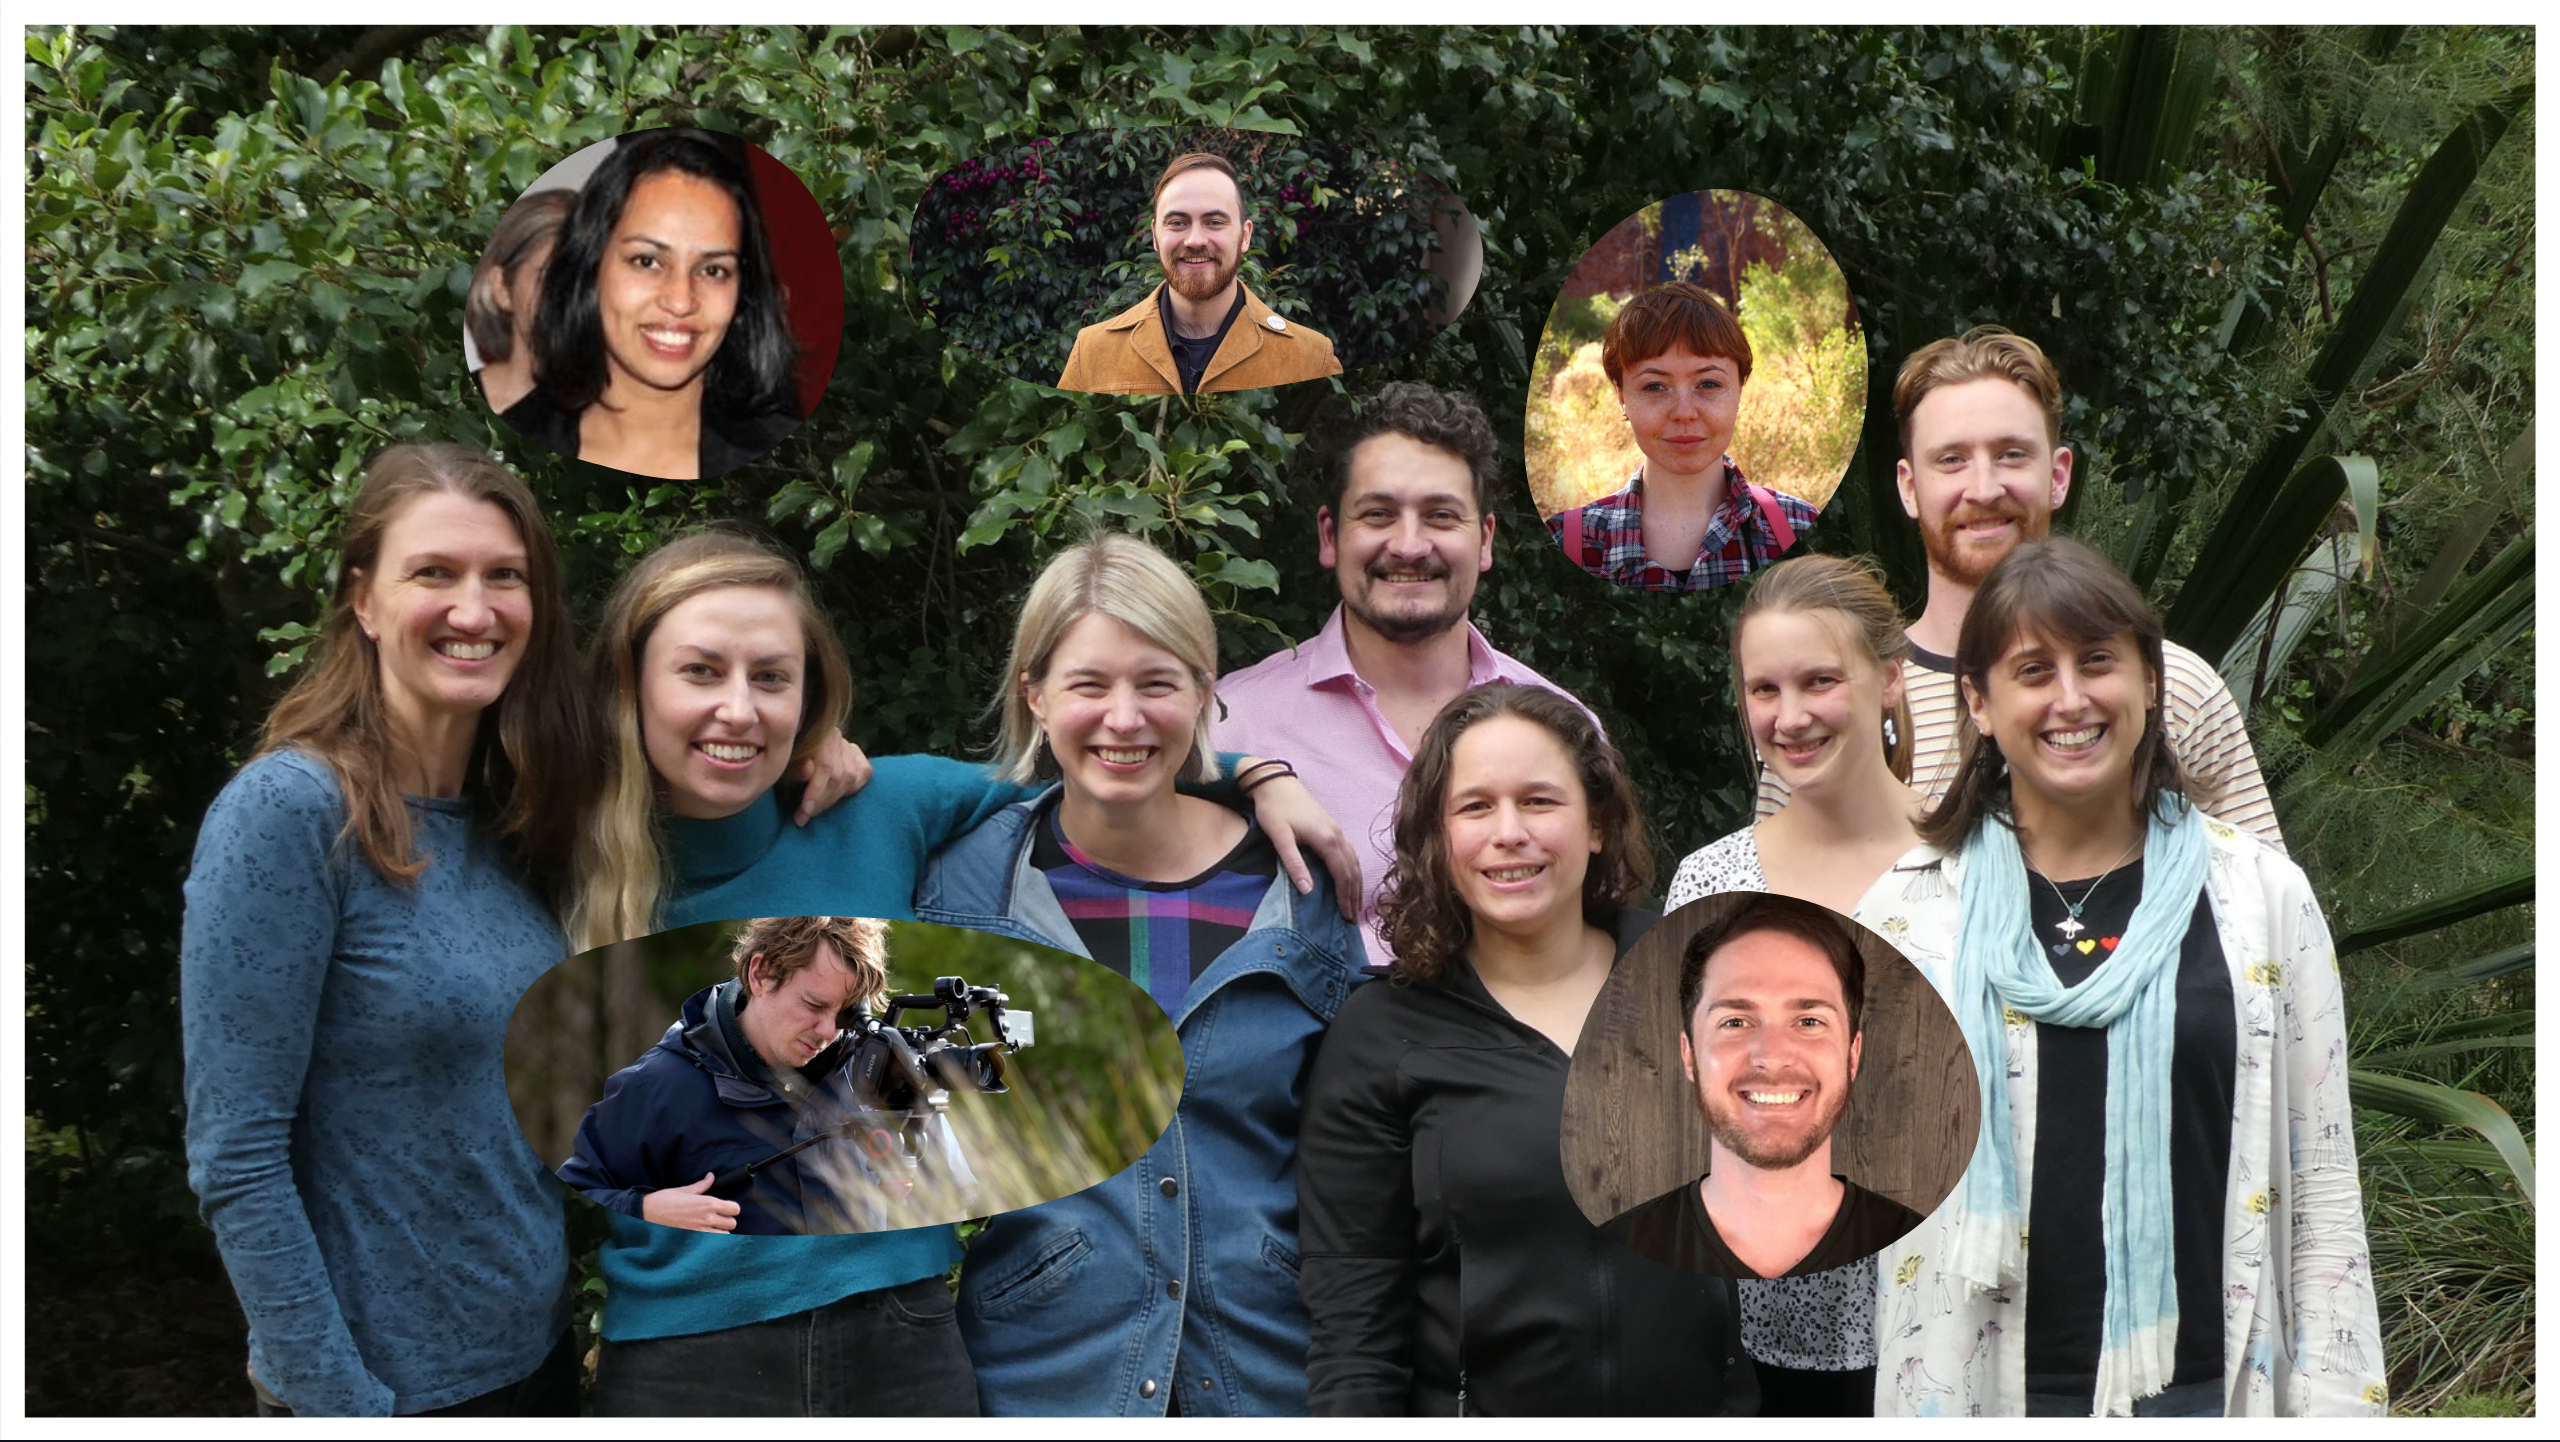 Remember The Wild team standing together in front of greenery at Healesville Sanctuary. There are eight people in the original photo, smiling with their arms around each other. Then there are five insets of team members who couldn't be there on the day the photo was taken.